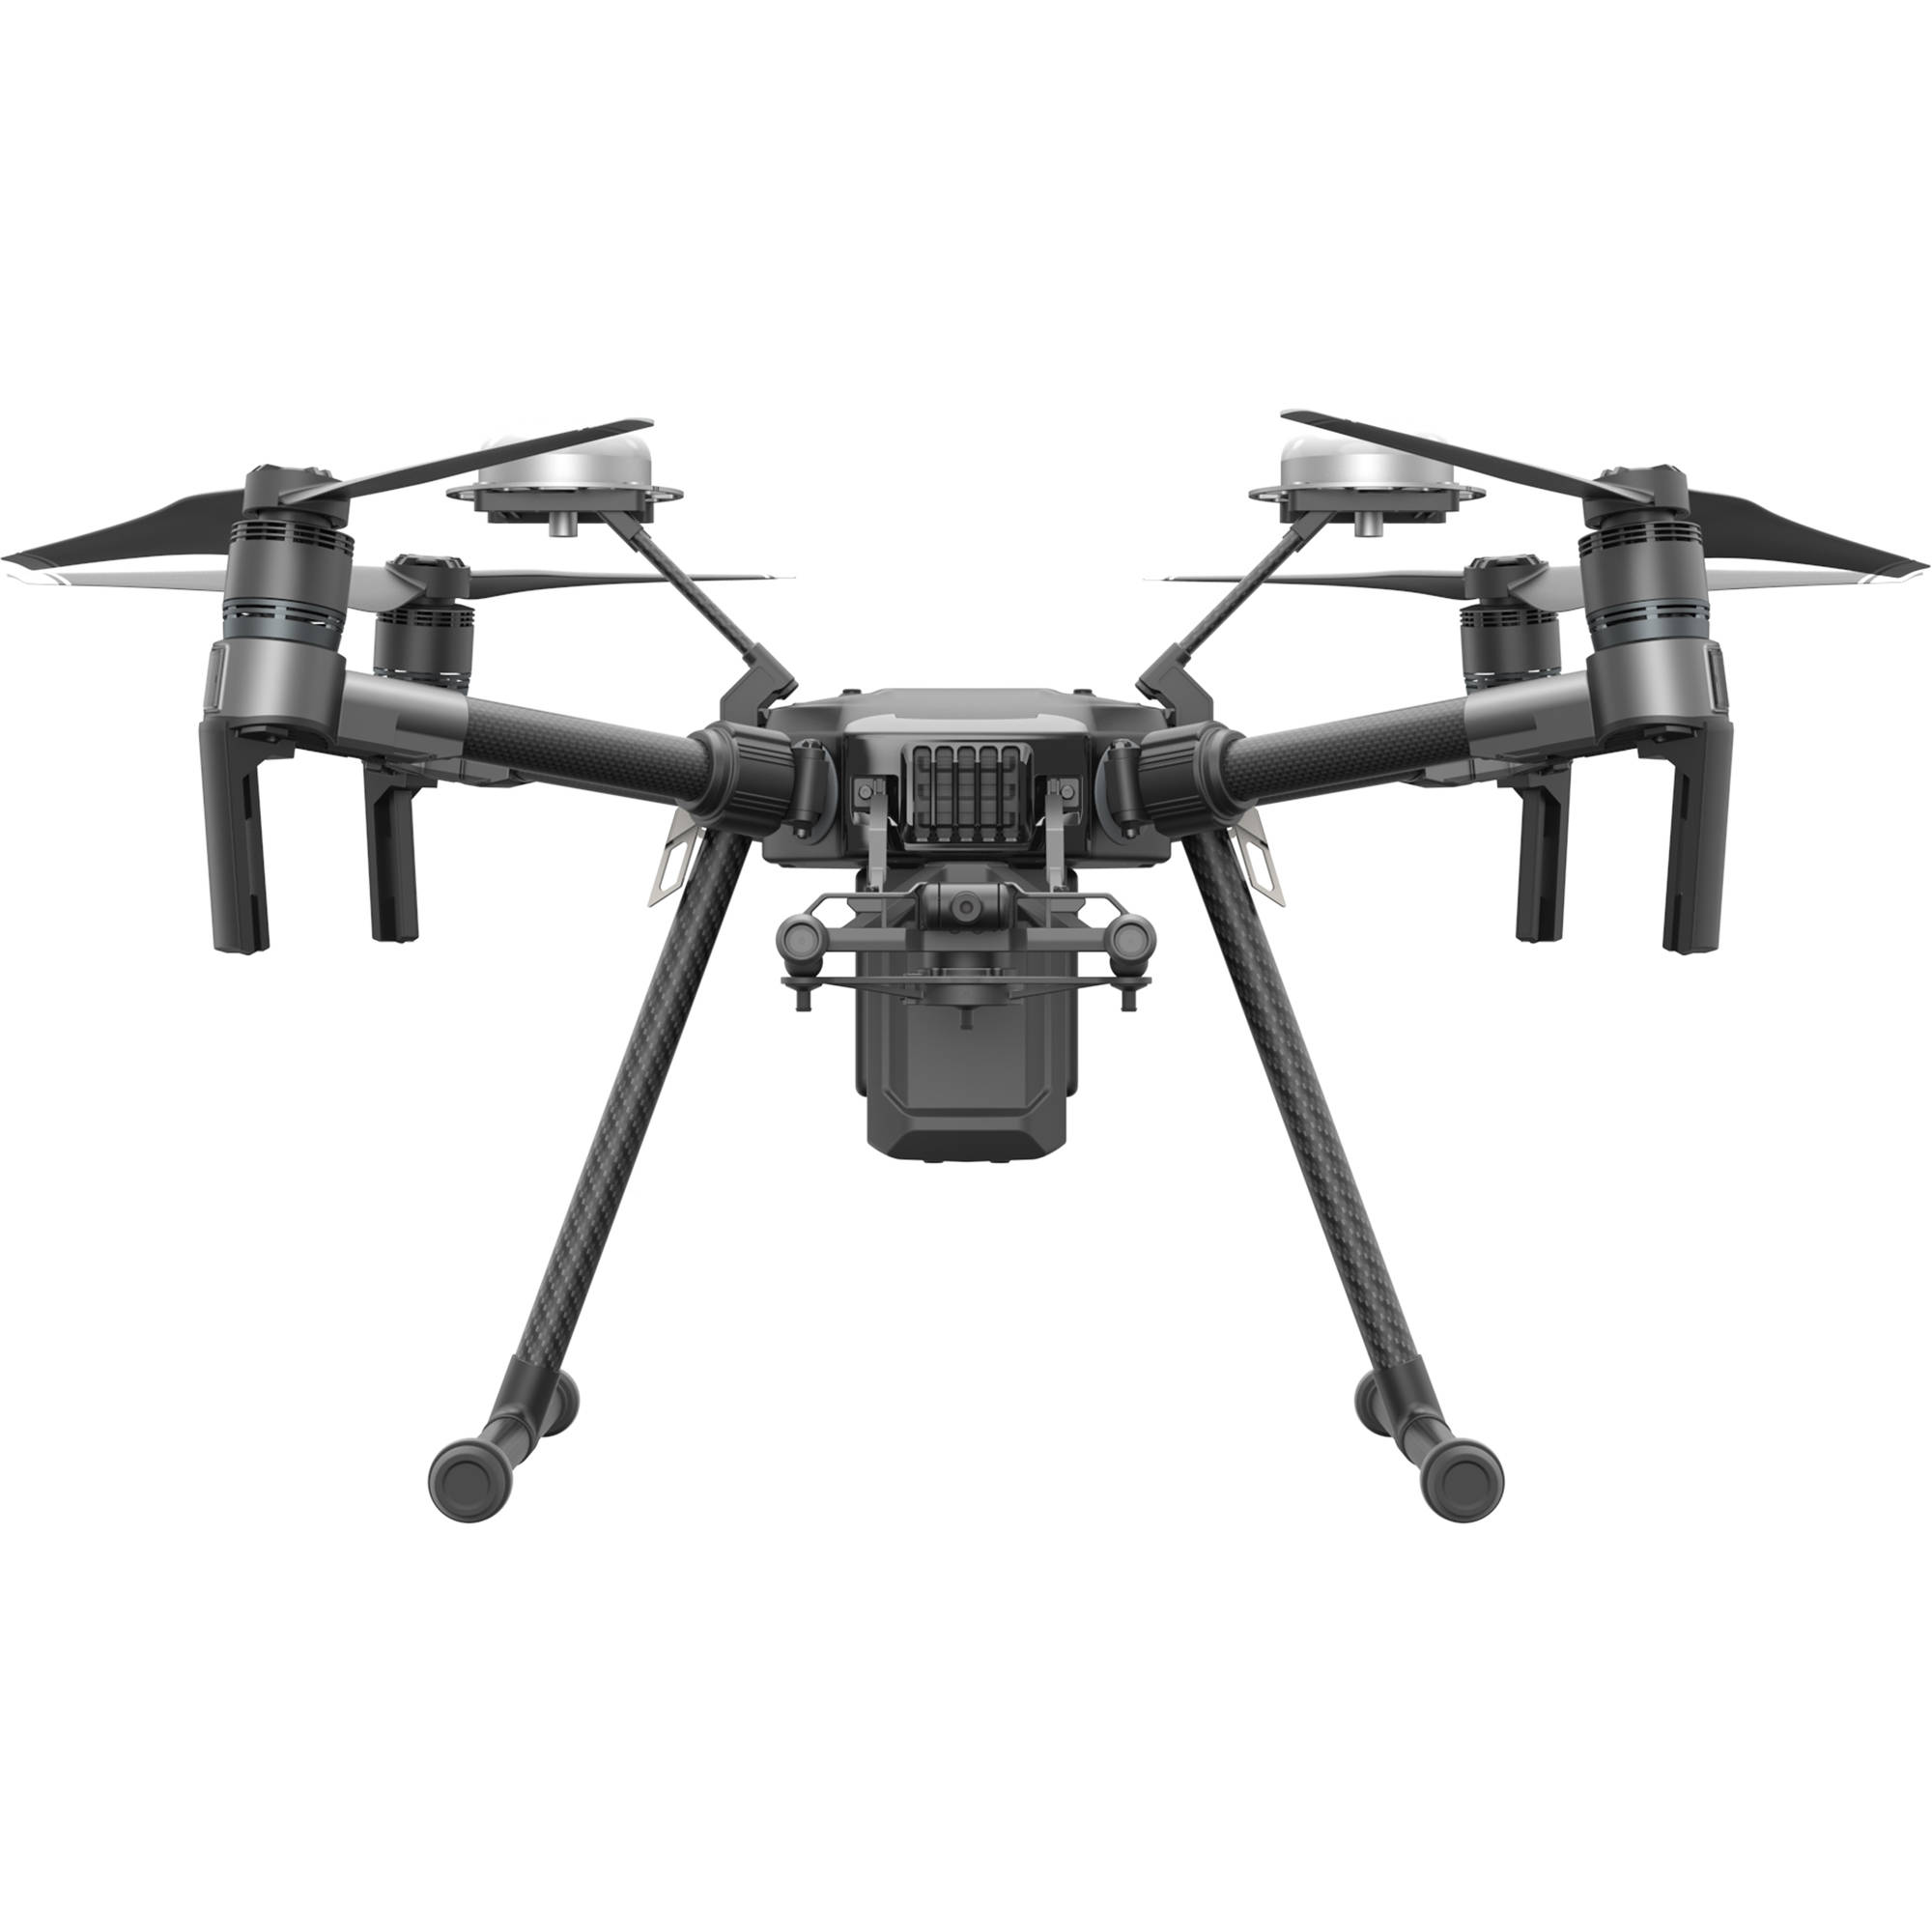 DJI Matrice 210 Professional Quadcopter with RTK CP HY 000057